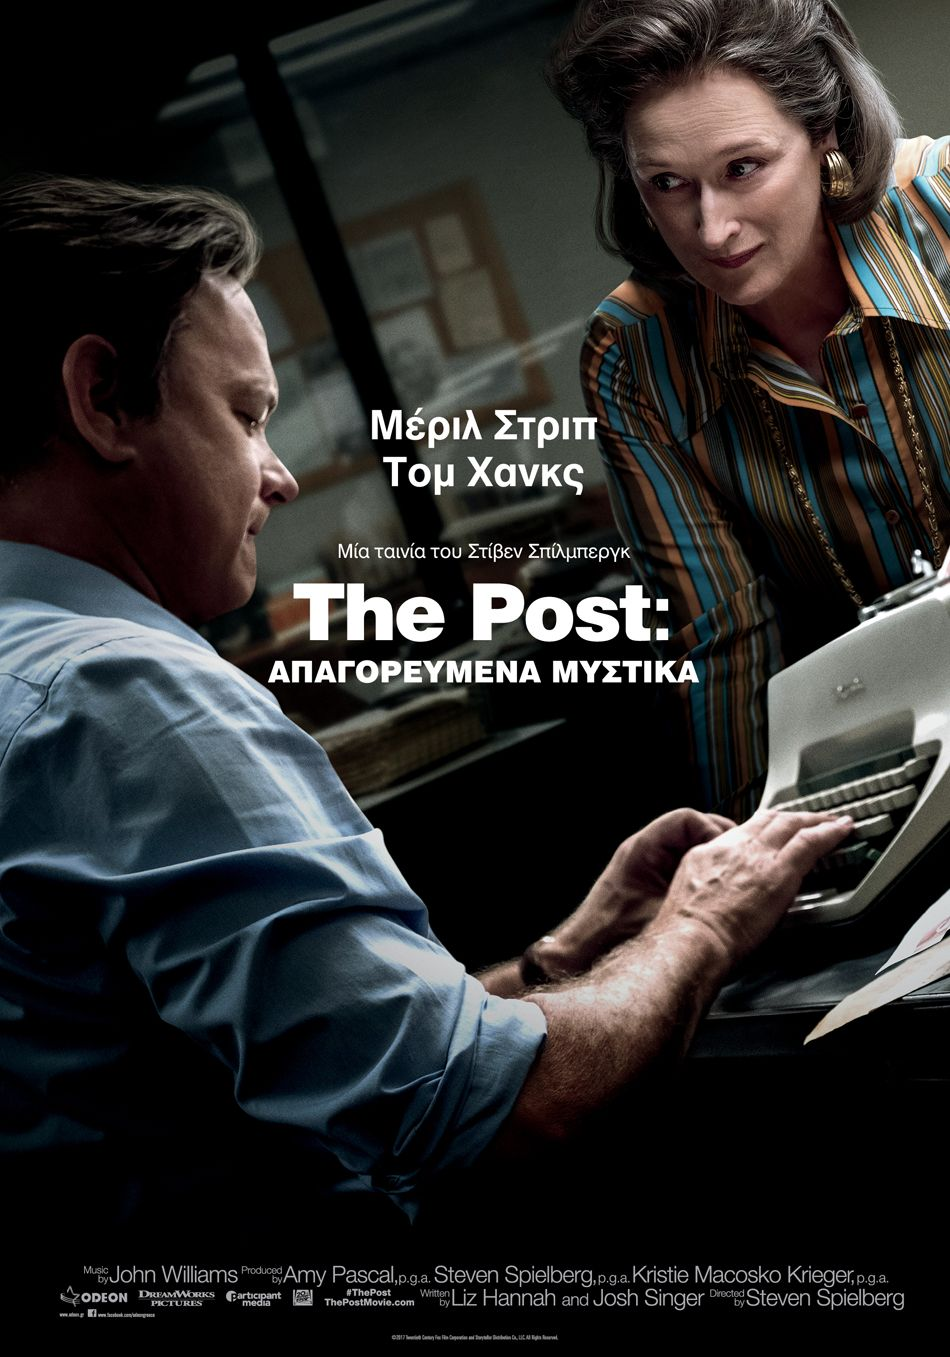 The Post: Απαγορευμένα Μυστικά (The Post) Poster